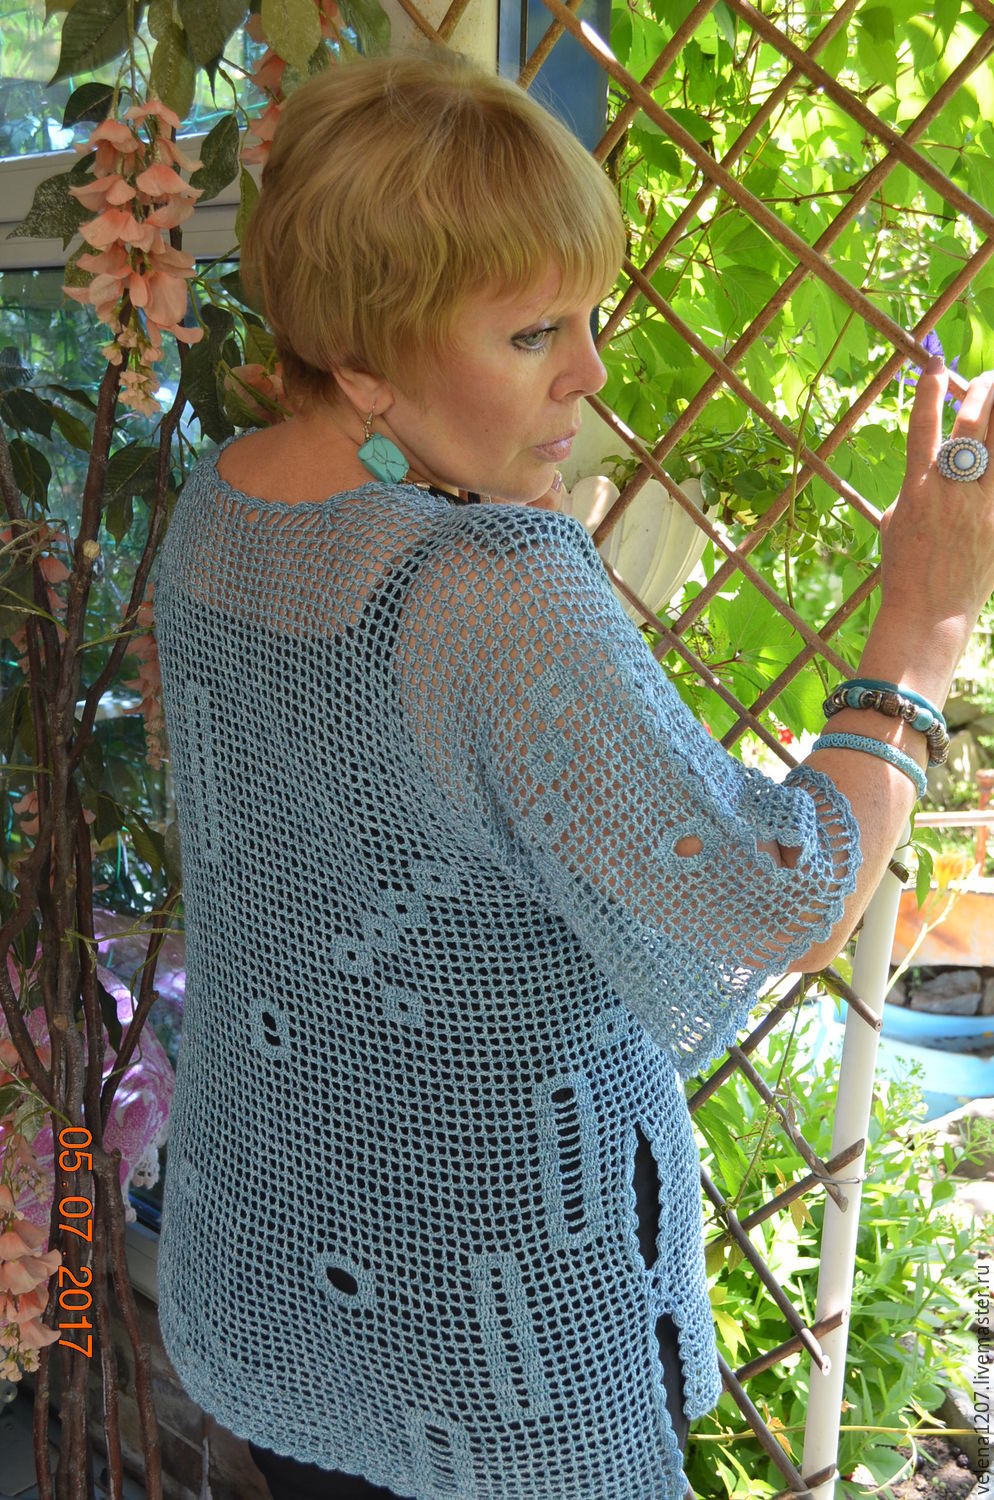 Tunic Hooks Impromptu Shop Online On Livemaster With Shipping